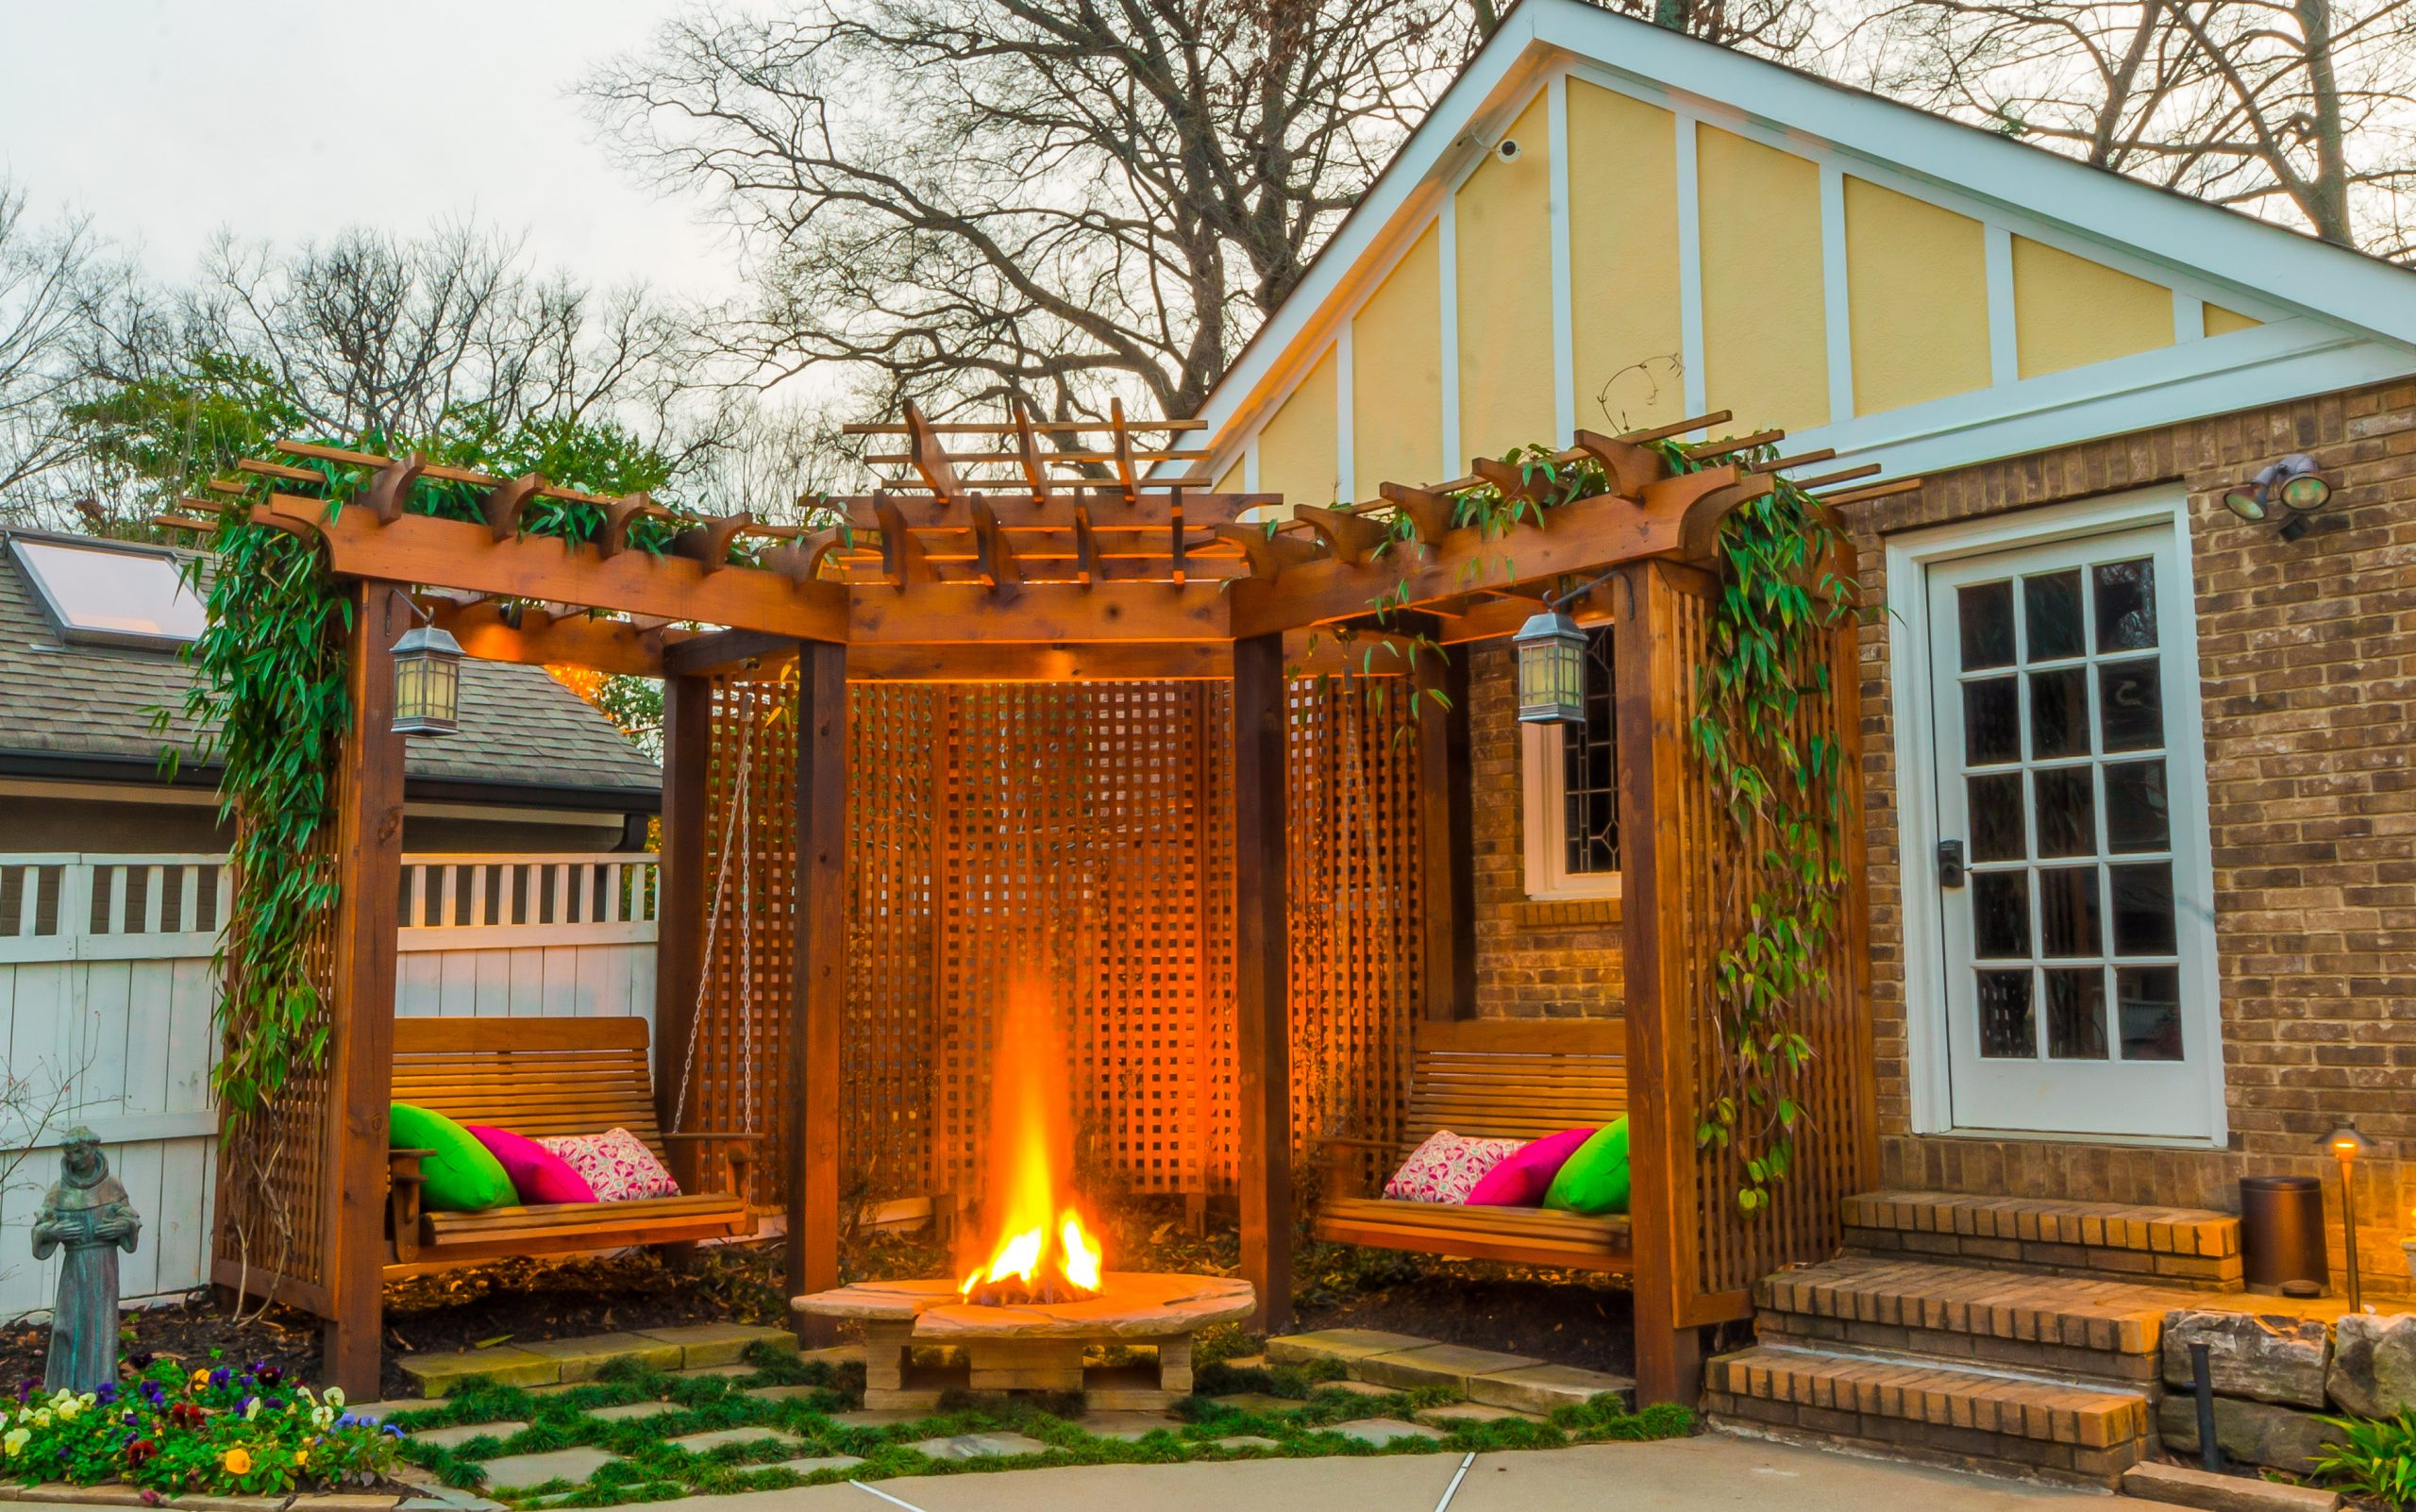 fire pit under pergola with wooden swings next to backyard guest house